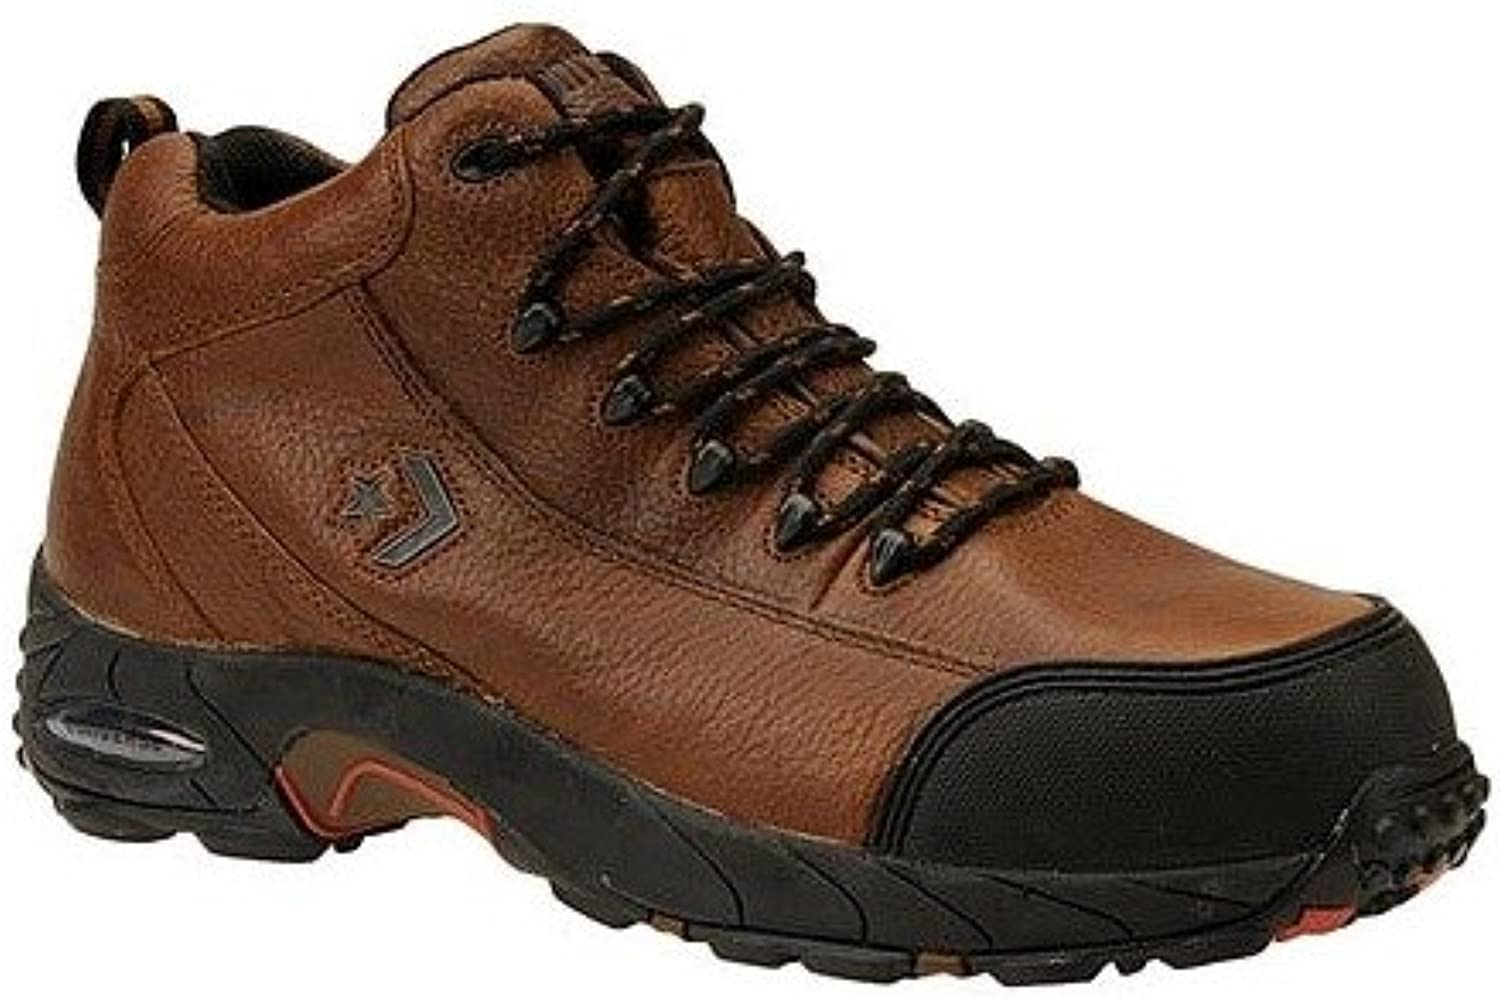 Men's Converse Comp Toe WP BRN - Footwear  Men's Footwear  Men's Work Boots shoes